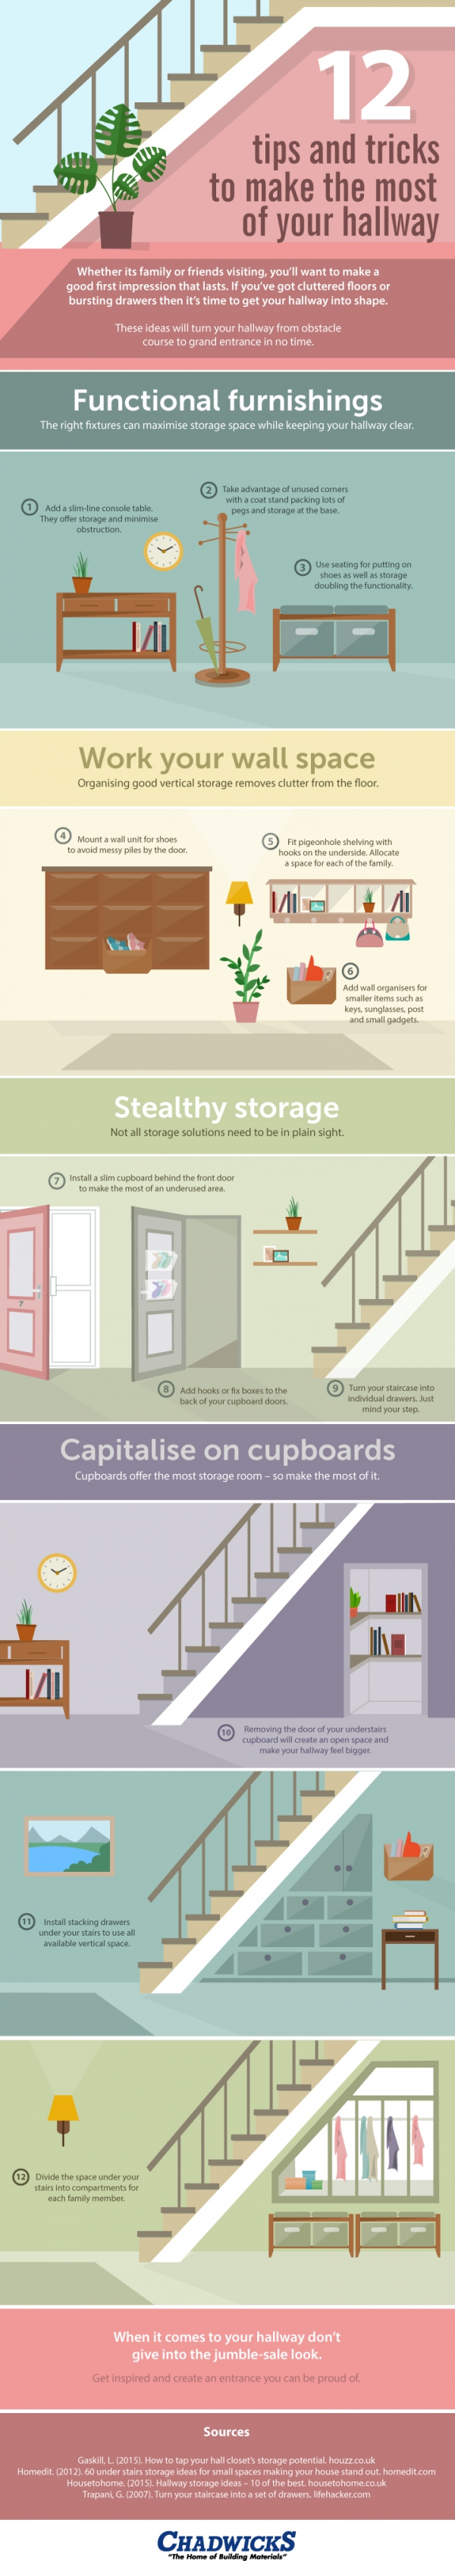 12-tips-and-tricks-to-make-the-most-of-your-hallway.jpg